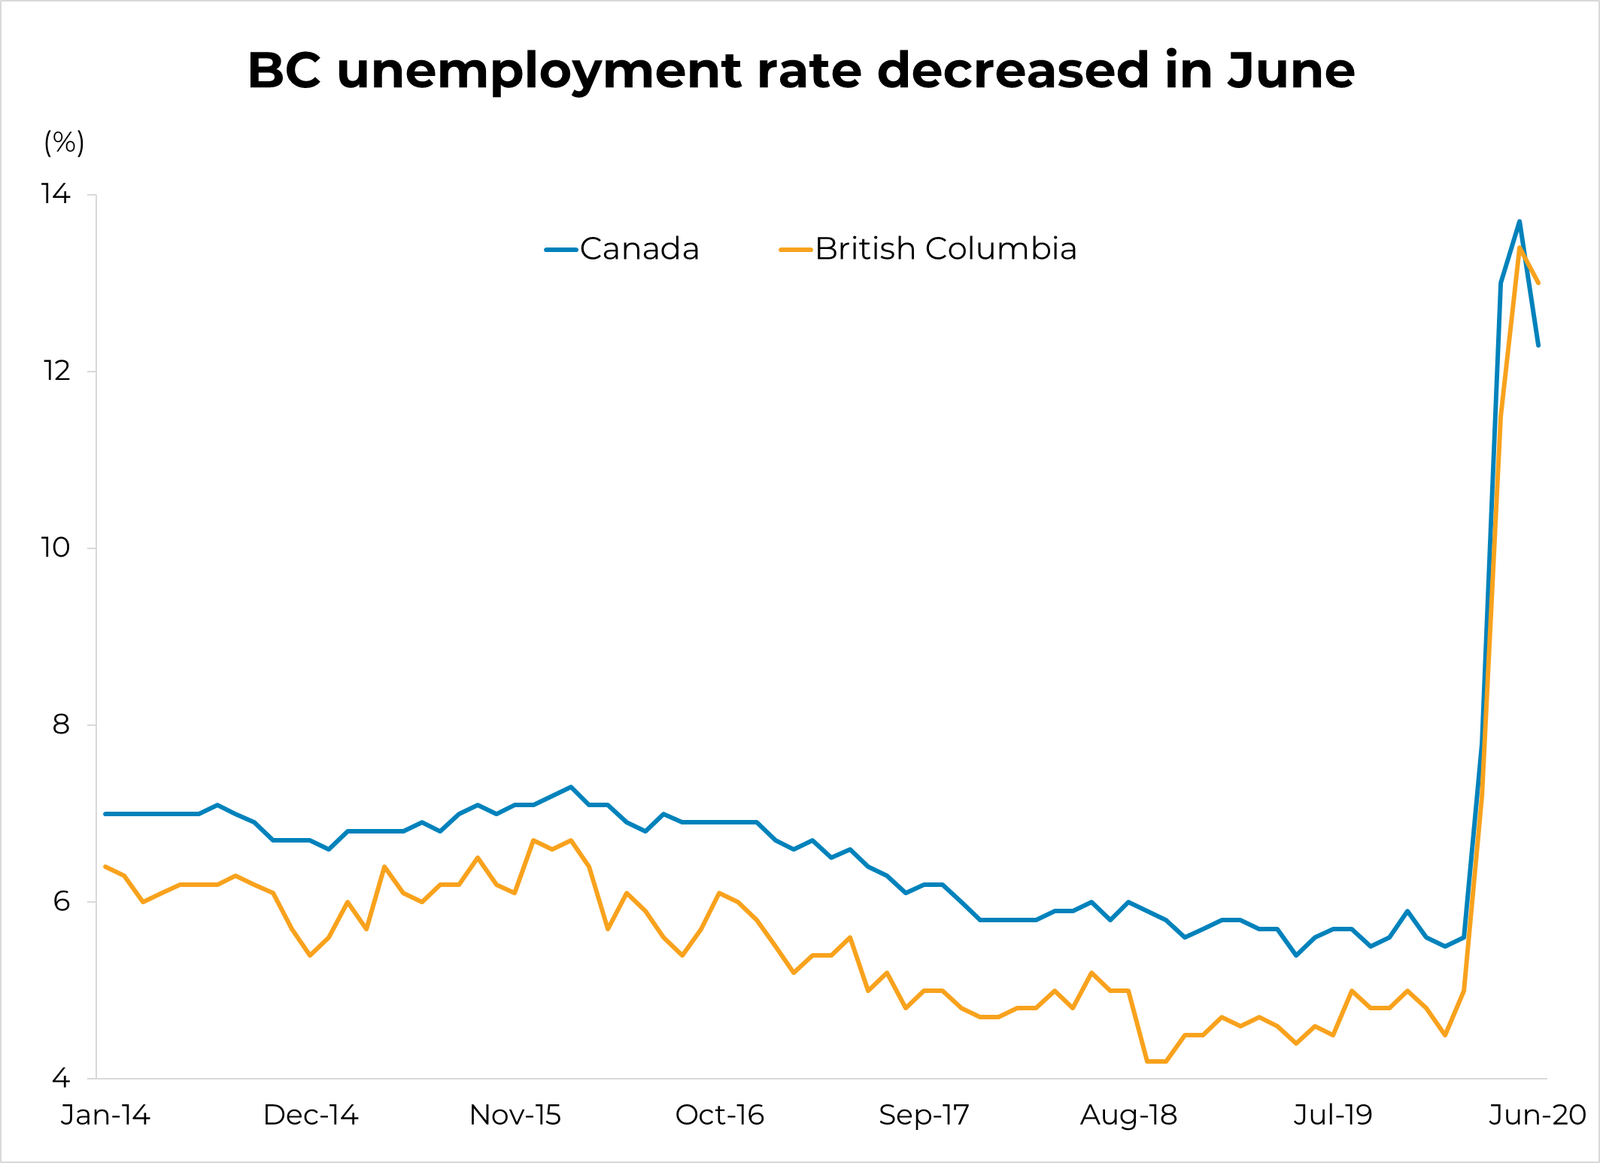 BC unemployment numbers for June 2020